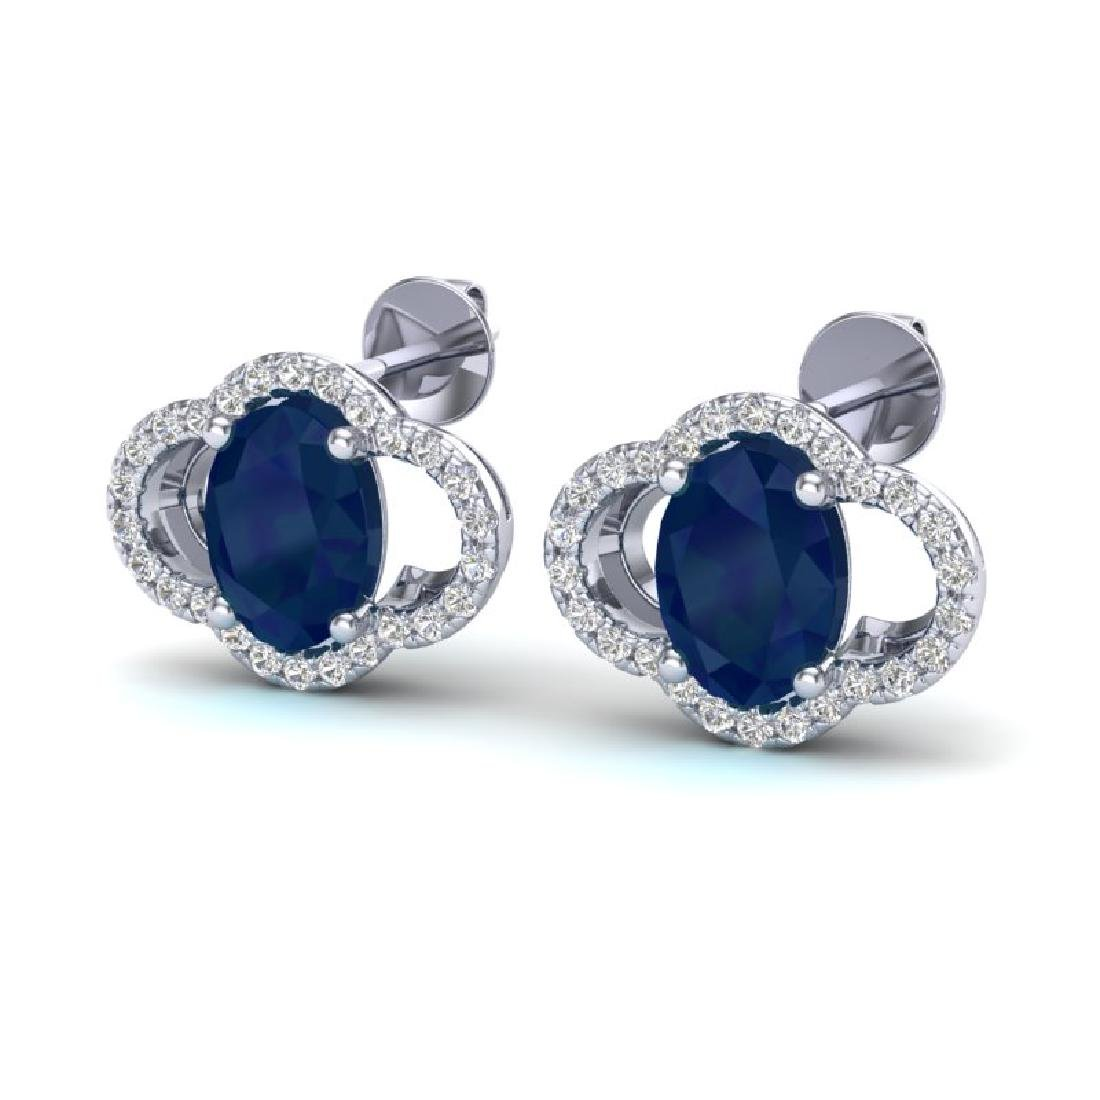 4 CTW Sapphire & Micro Pave VS/SI Diamond Earrings 10K